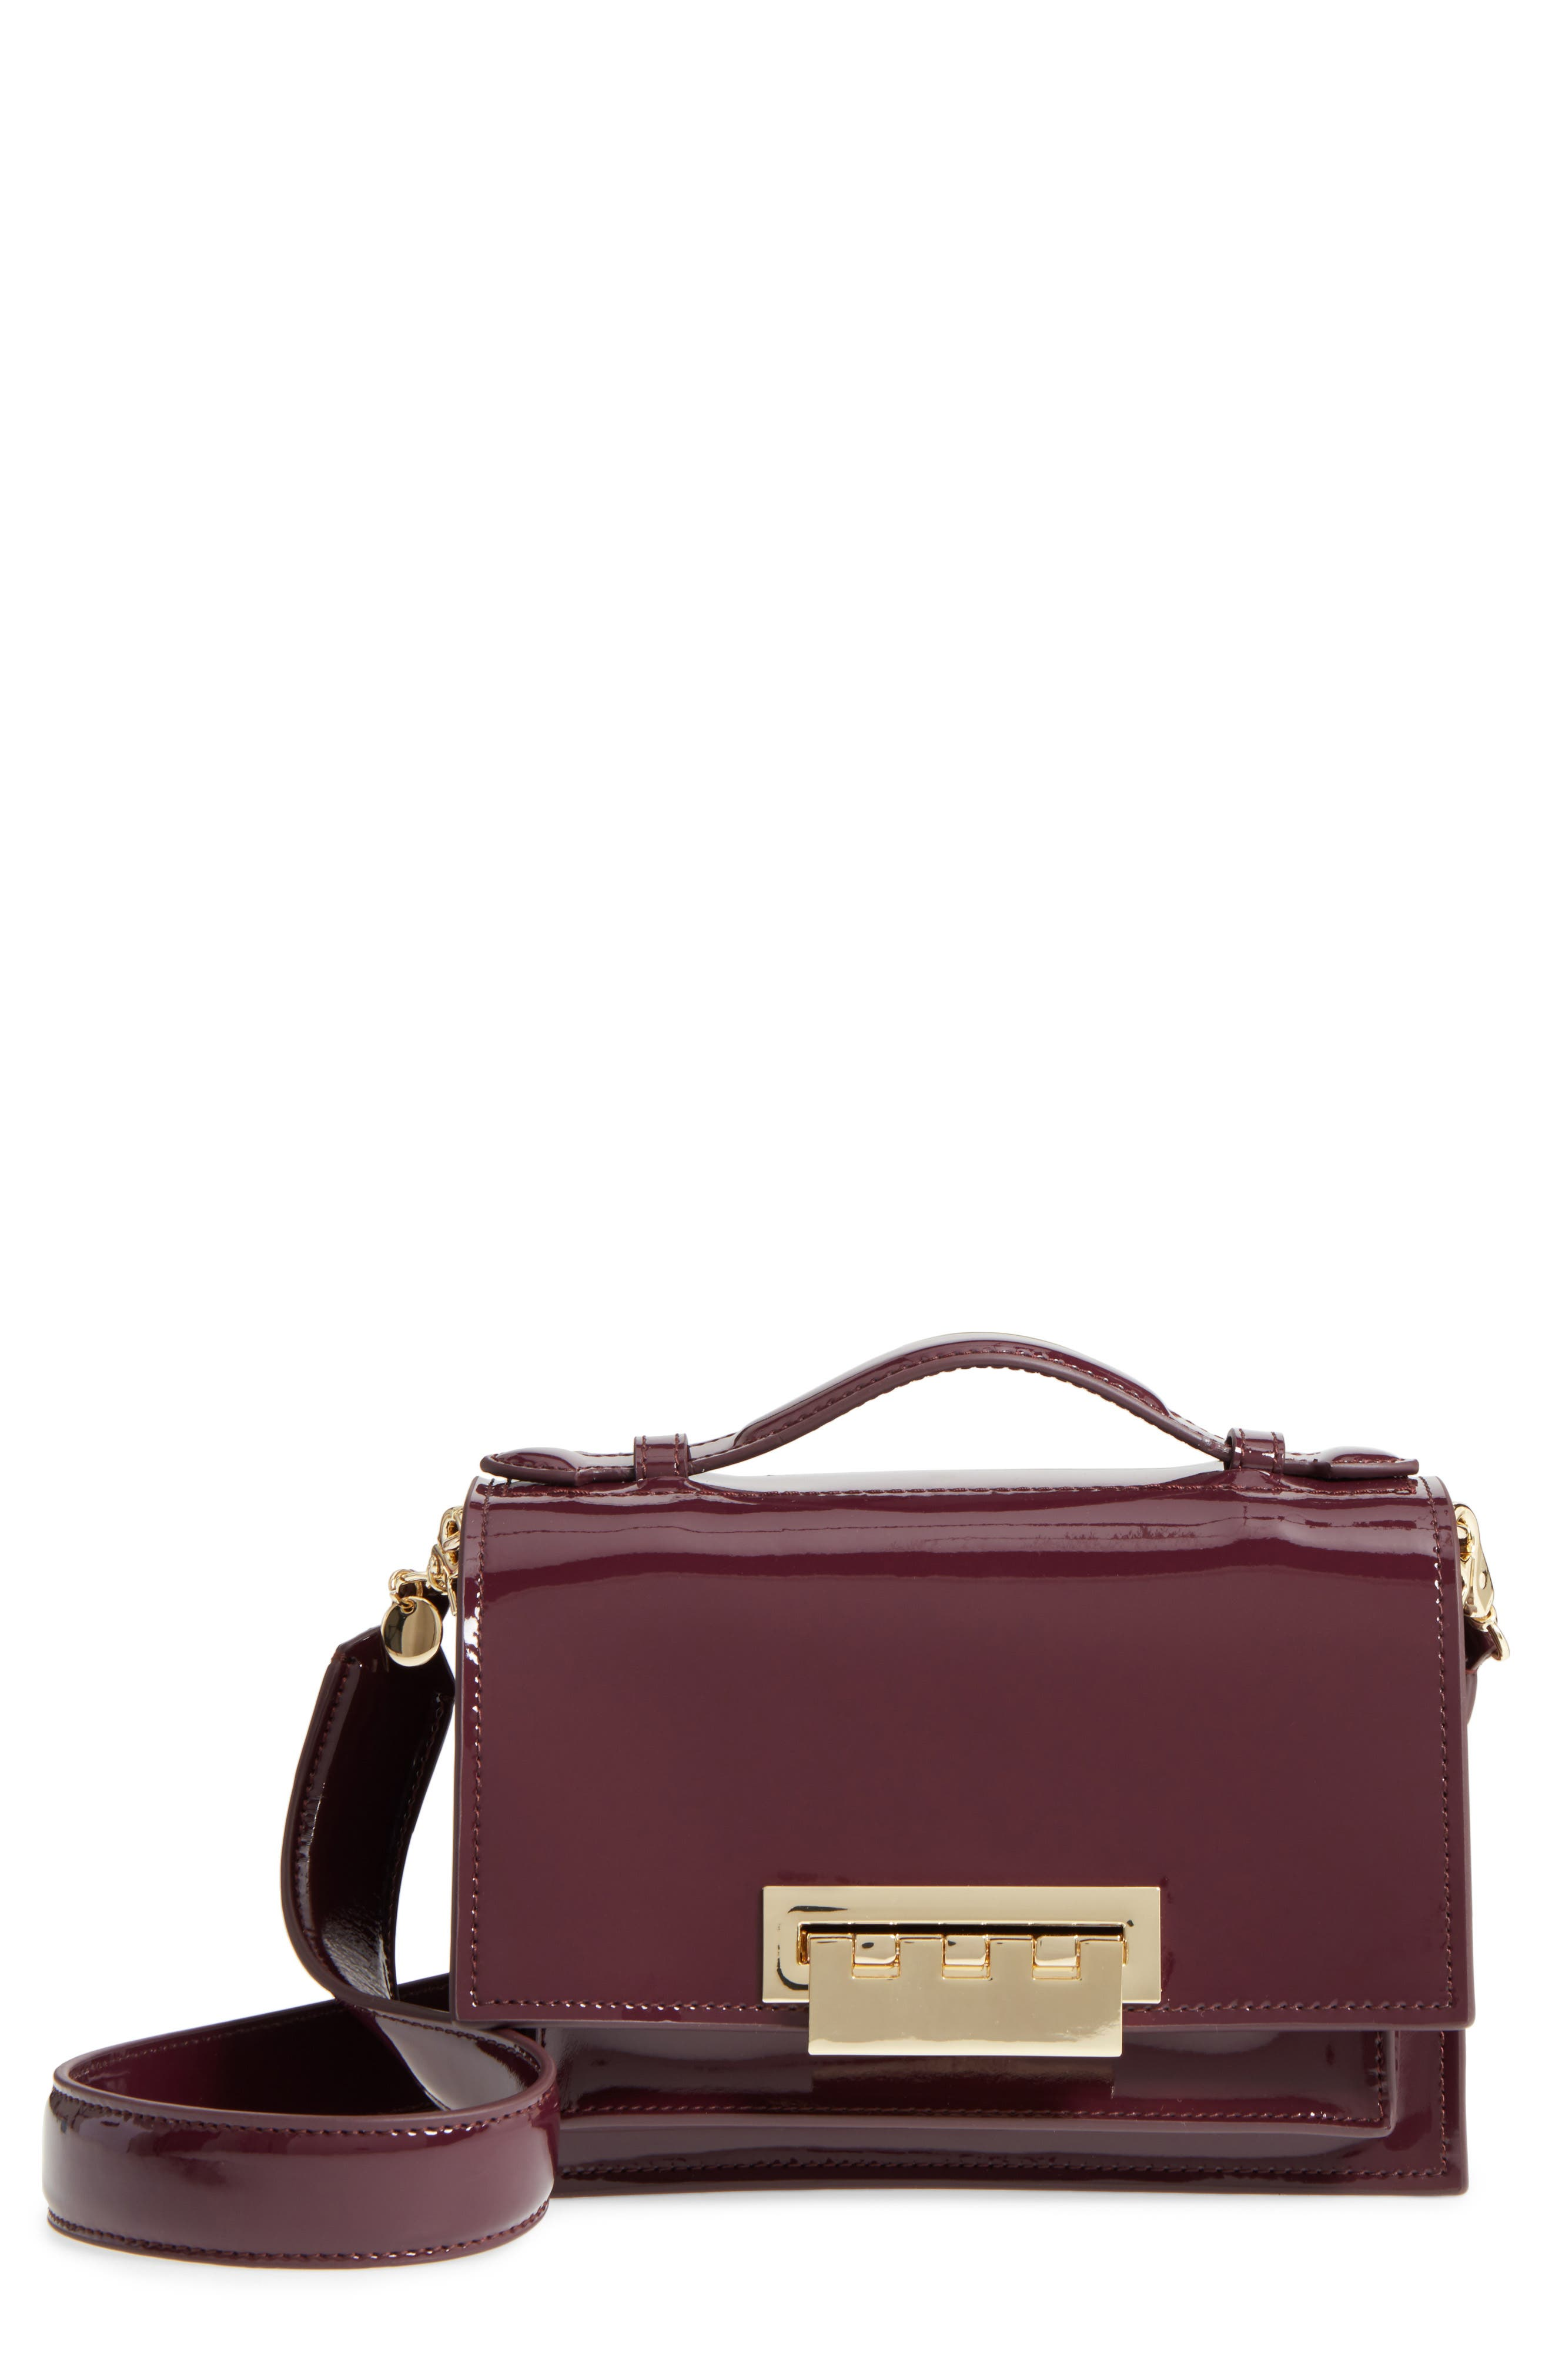 Alternate Image 1 Selected - ZAC Zac Posen Earthette Patent Leather Accordion Bag